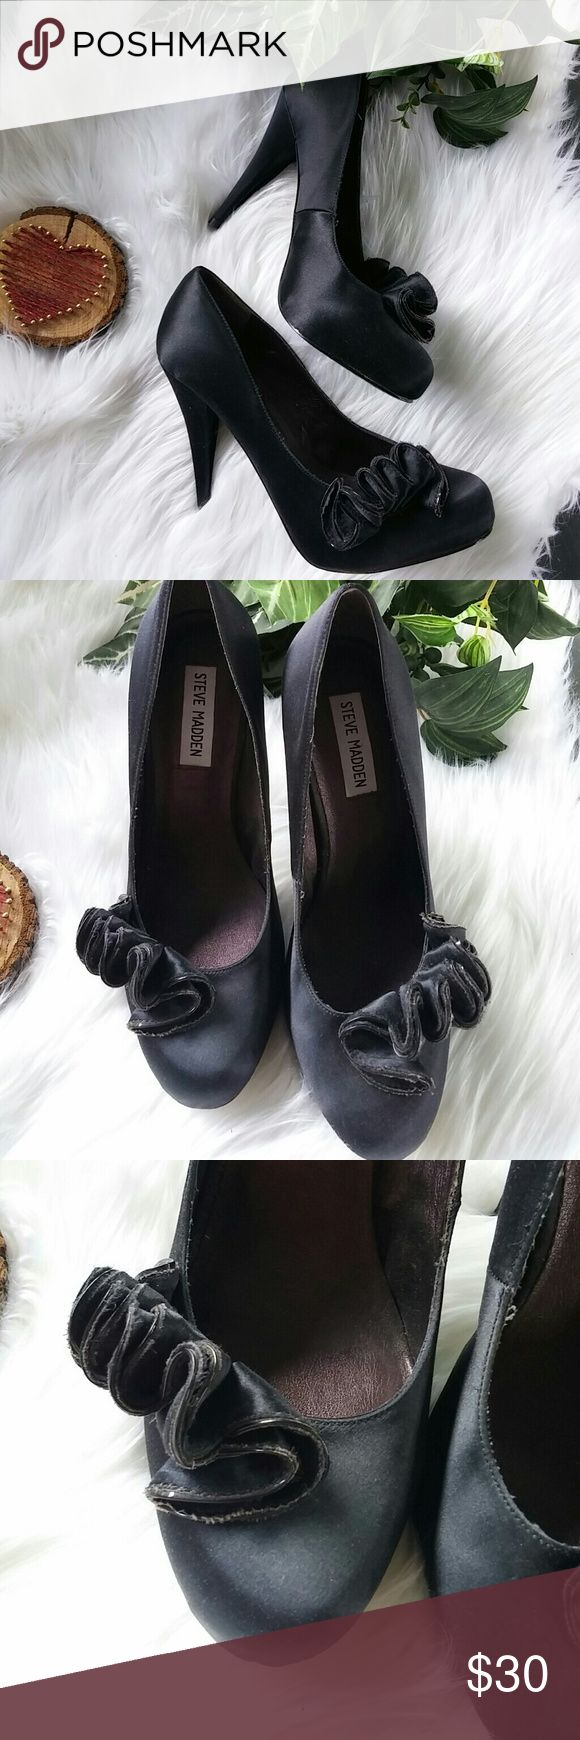 Steve Madden women's black heels These are beautiful pair of Steve Madden women's black high heels size eight and a half Fenton Lake material with gathered ruffle like flower in front Steve Madden Shoes Heels